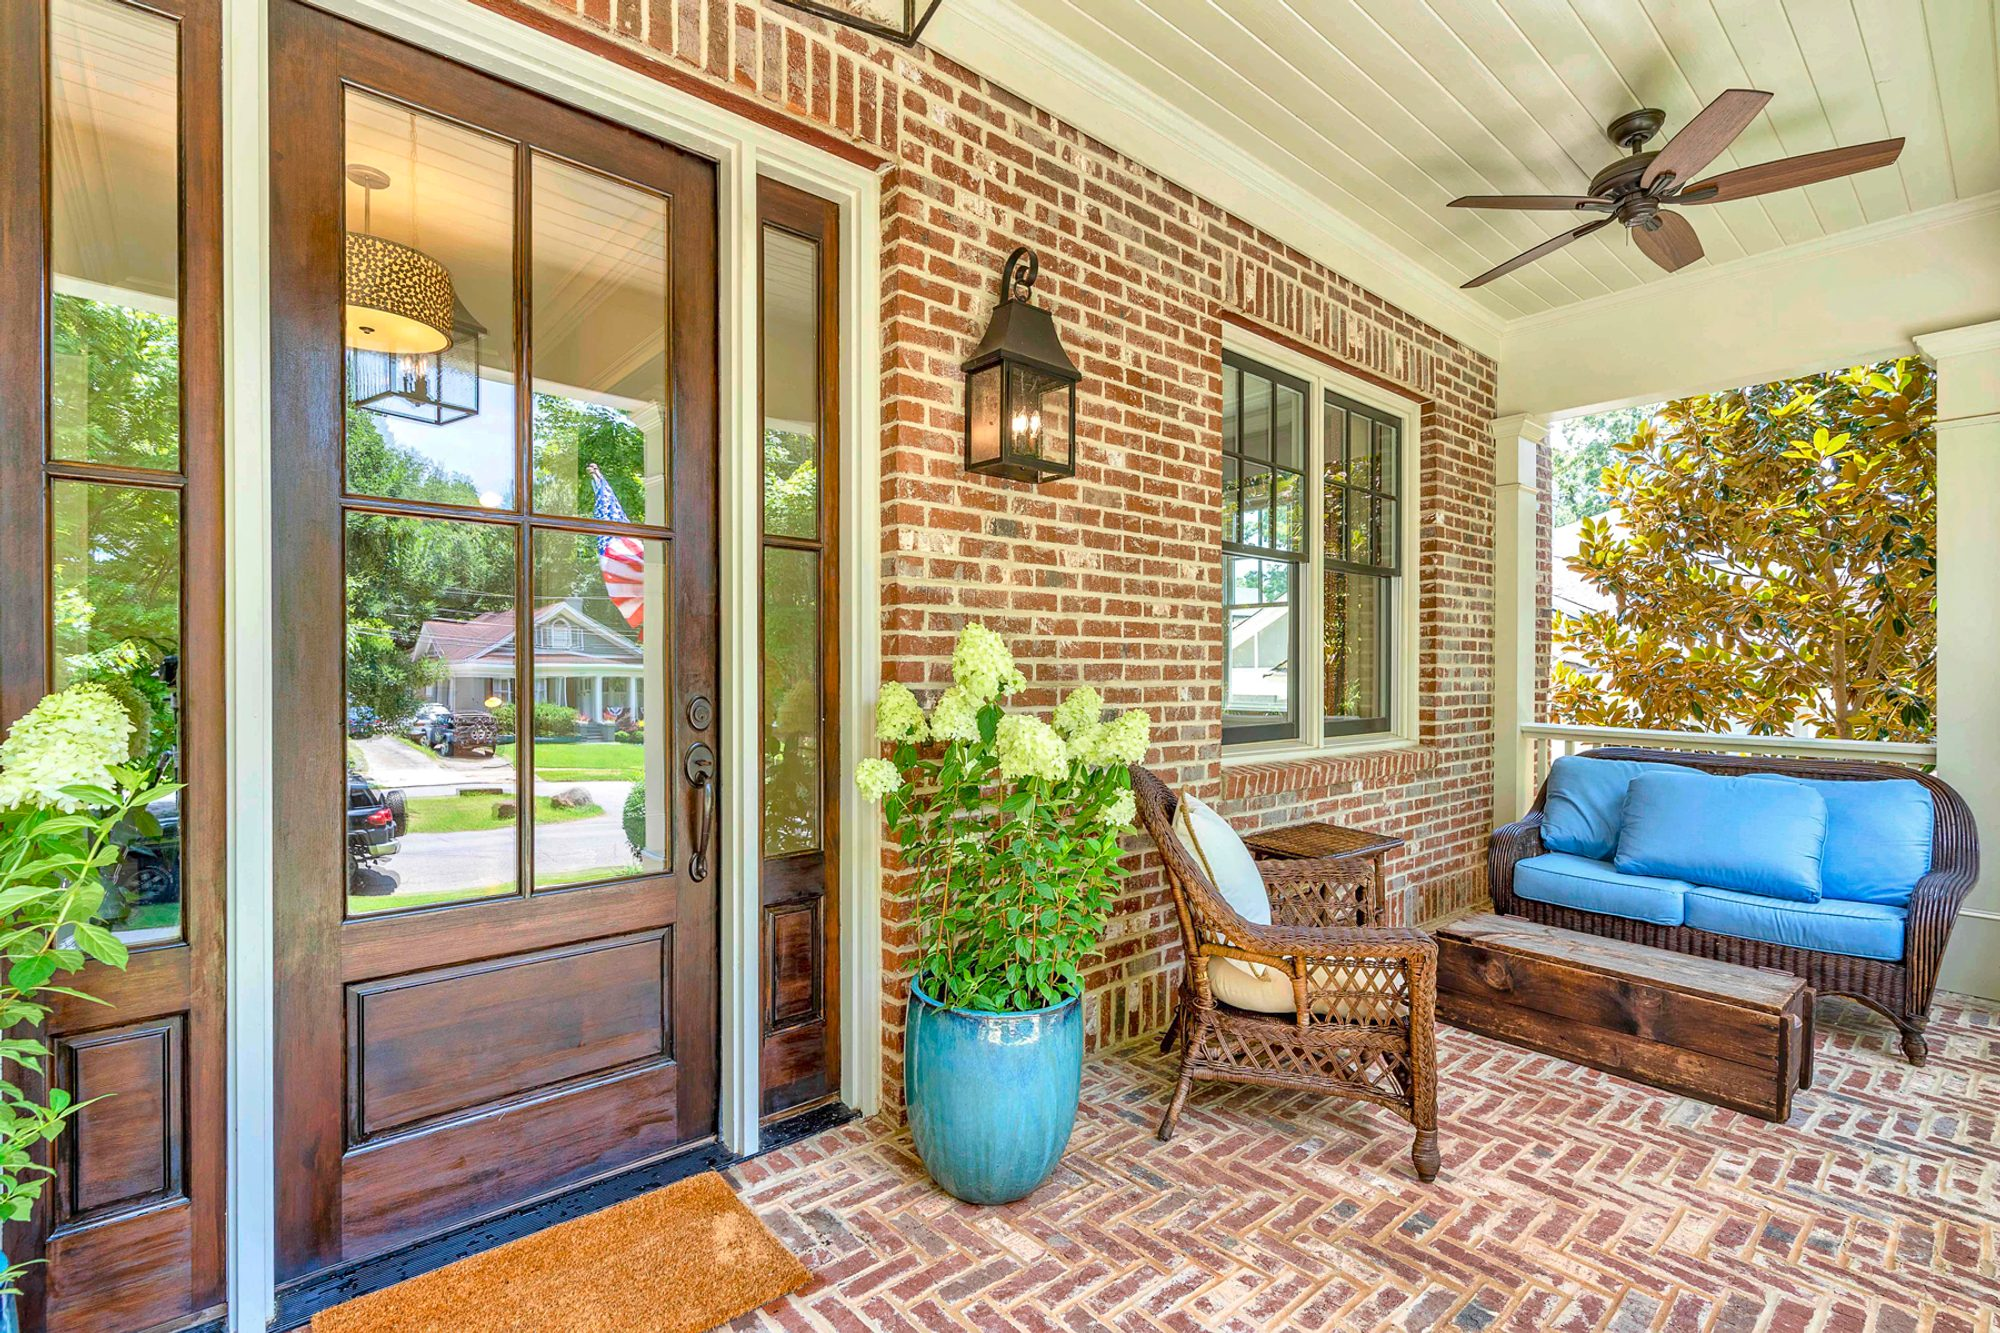 Red Brick Patio Ideas | DIY Paver Designs & Pictues on Red Paver Patio Ideas id=31367